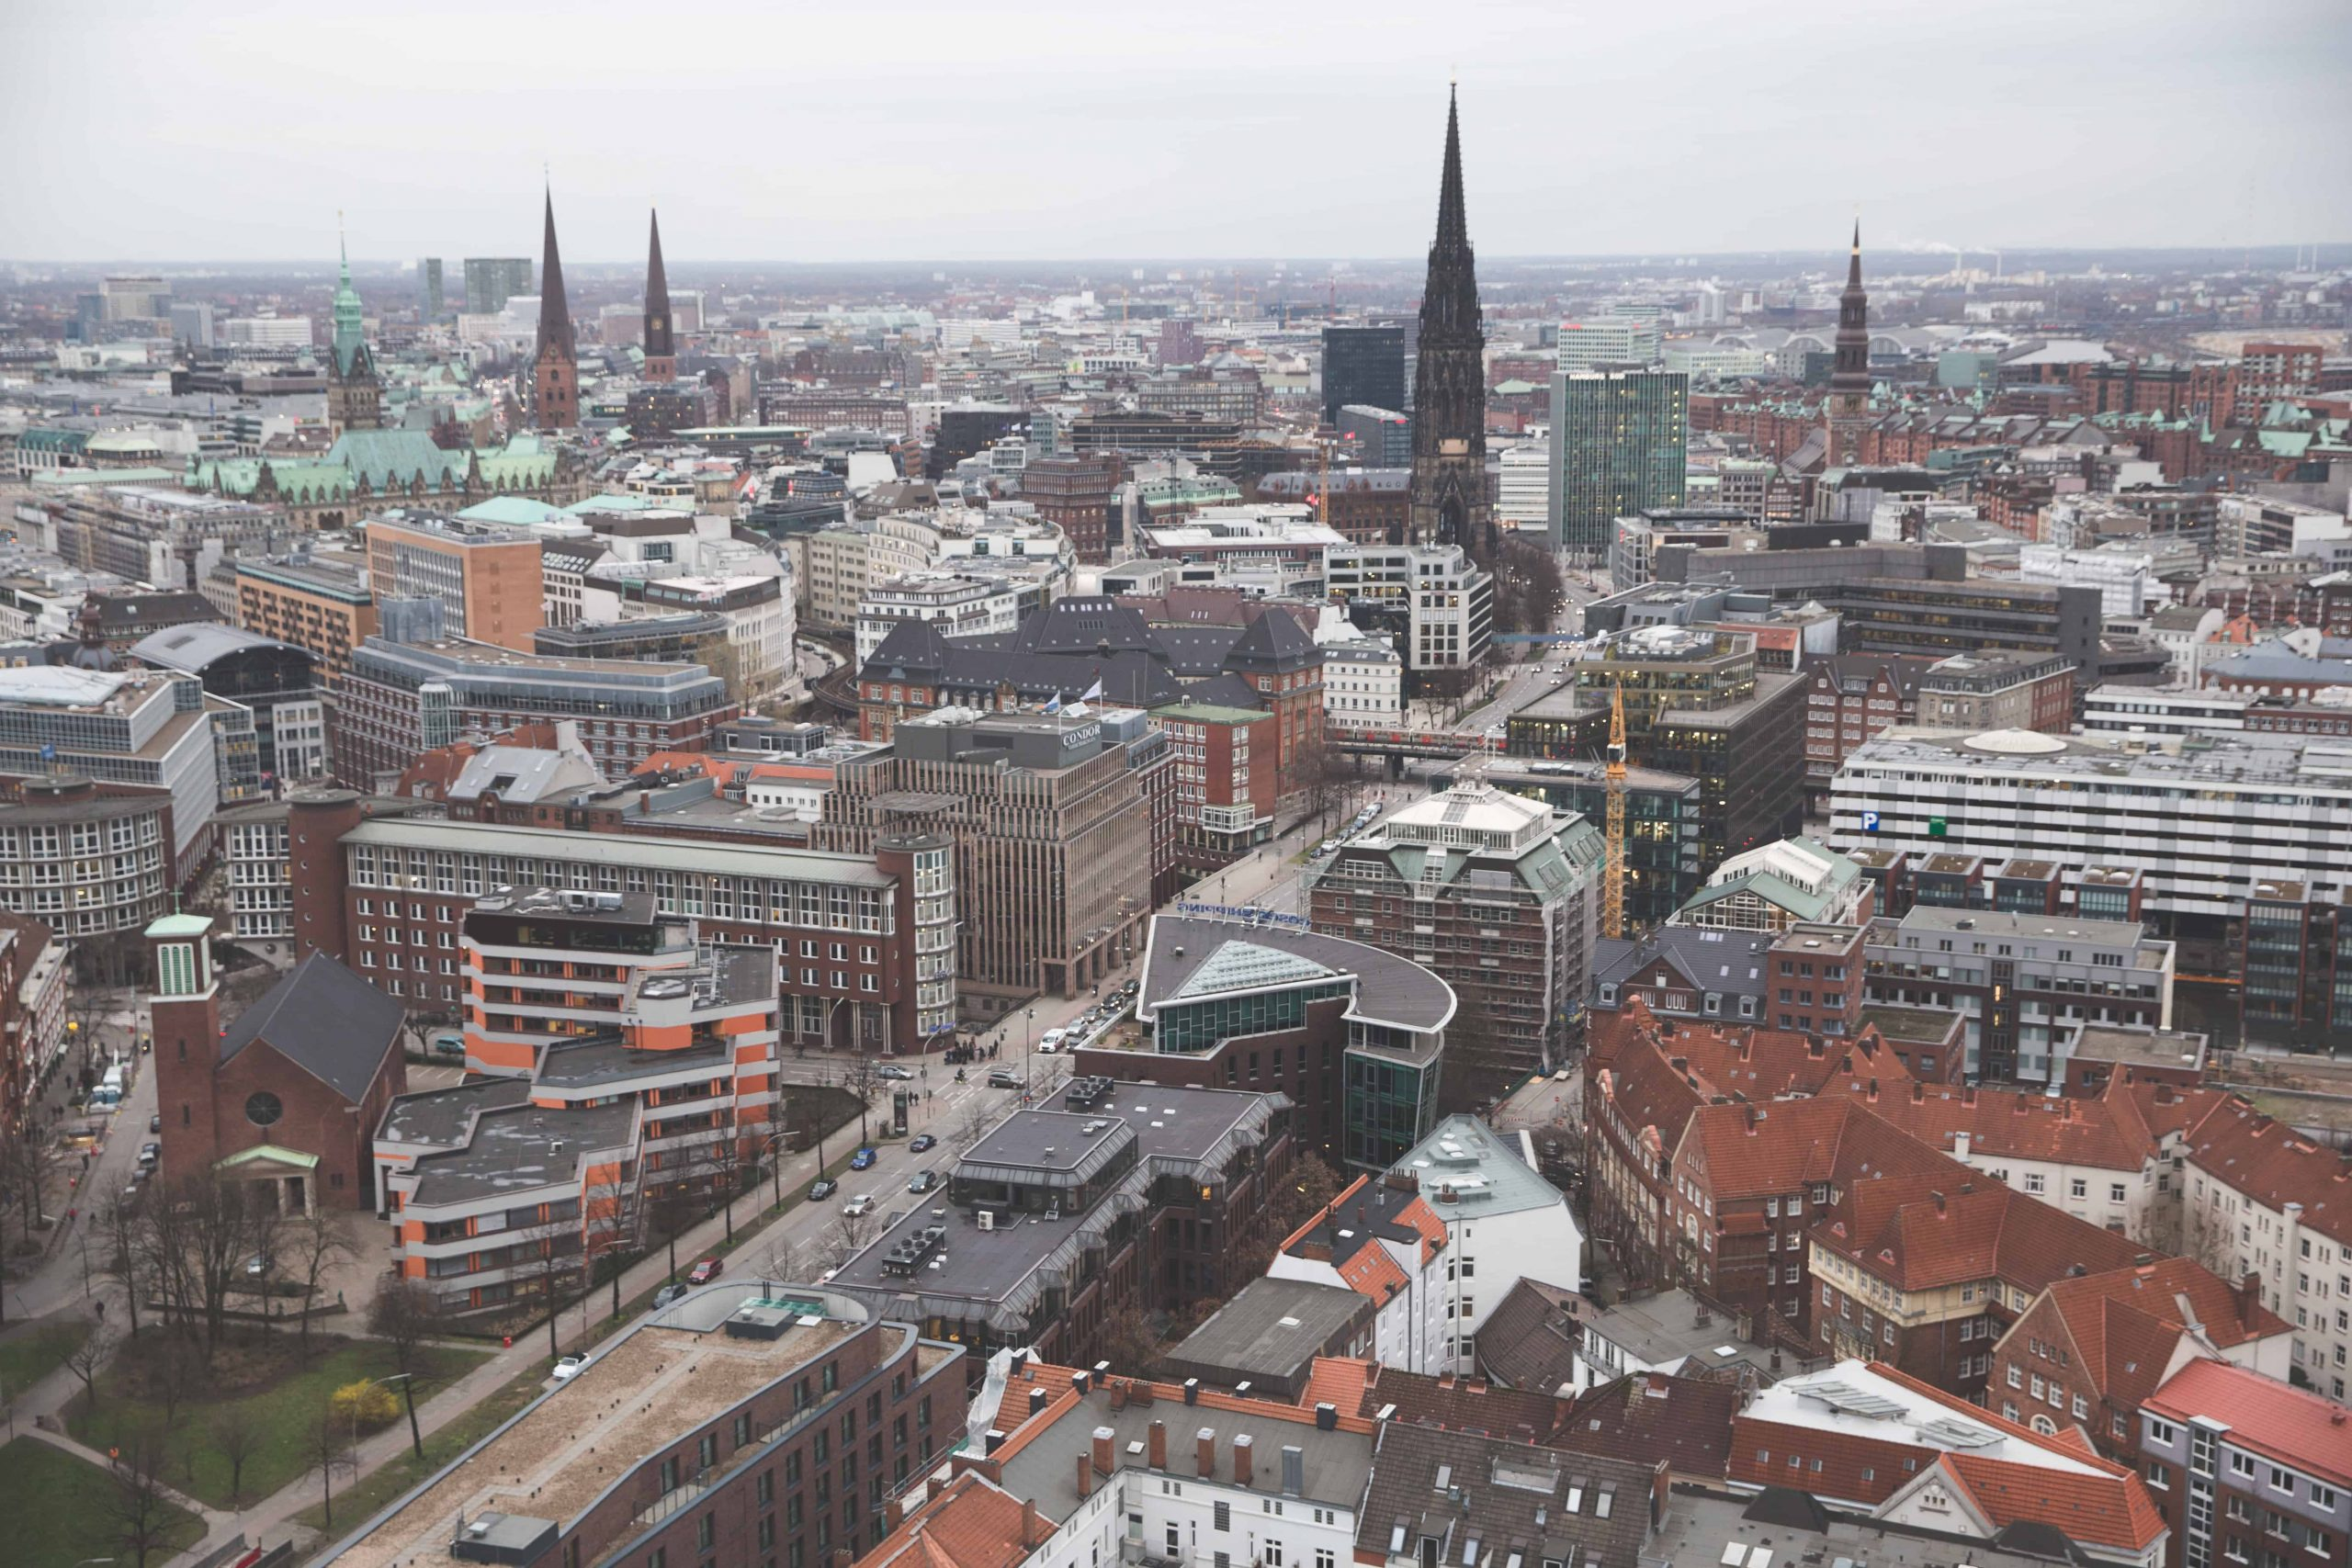 View of buildings in Hamburg, Germany from Saint Michael's Church (Michel)